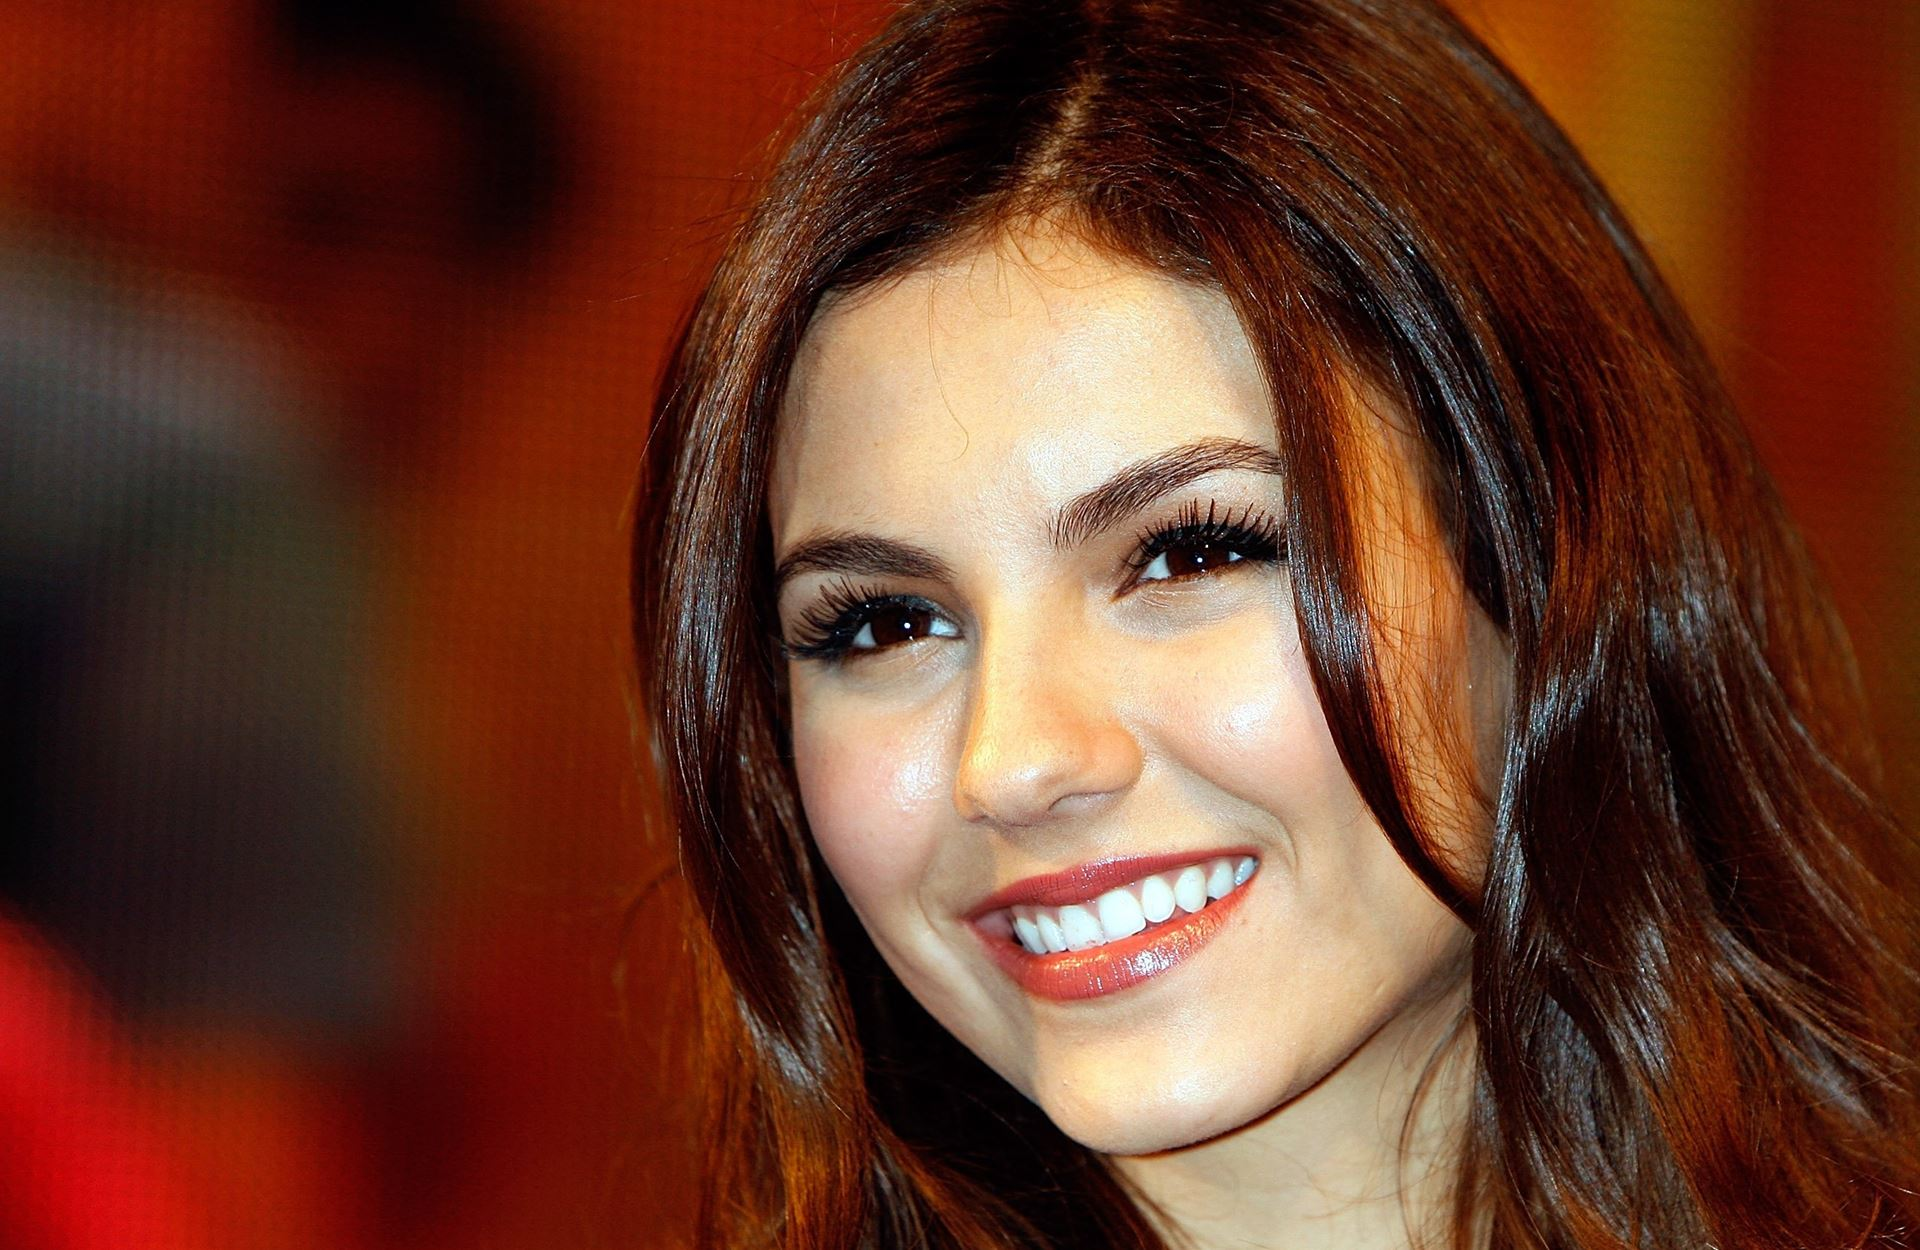 cute victoria justice nice smiling pose free download laptop background photo hd